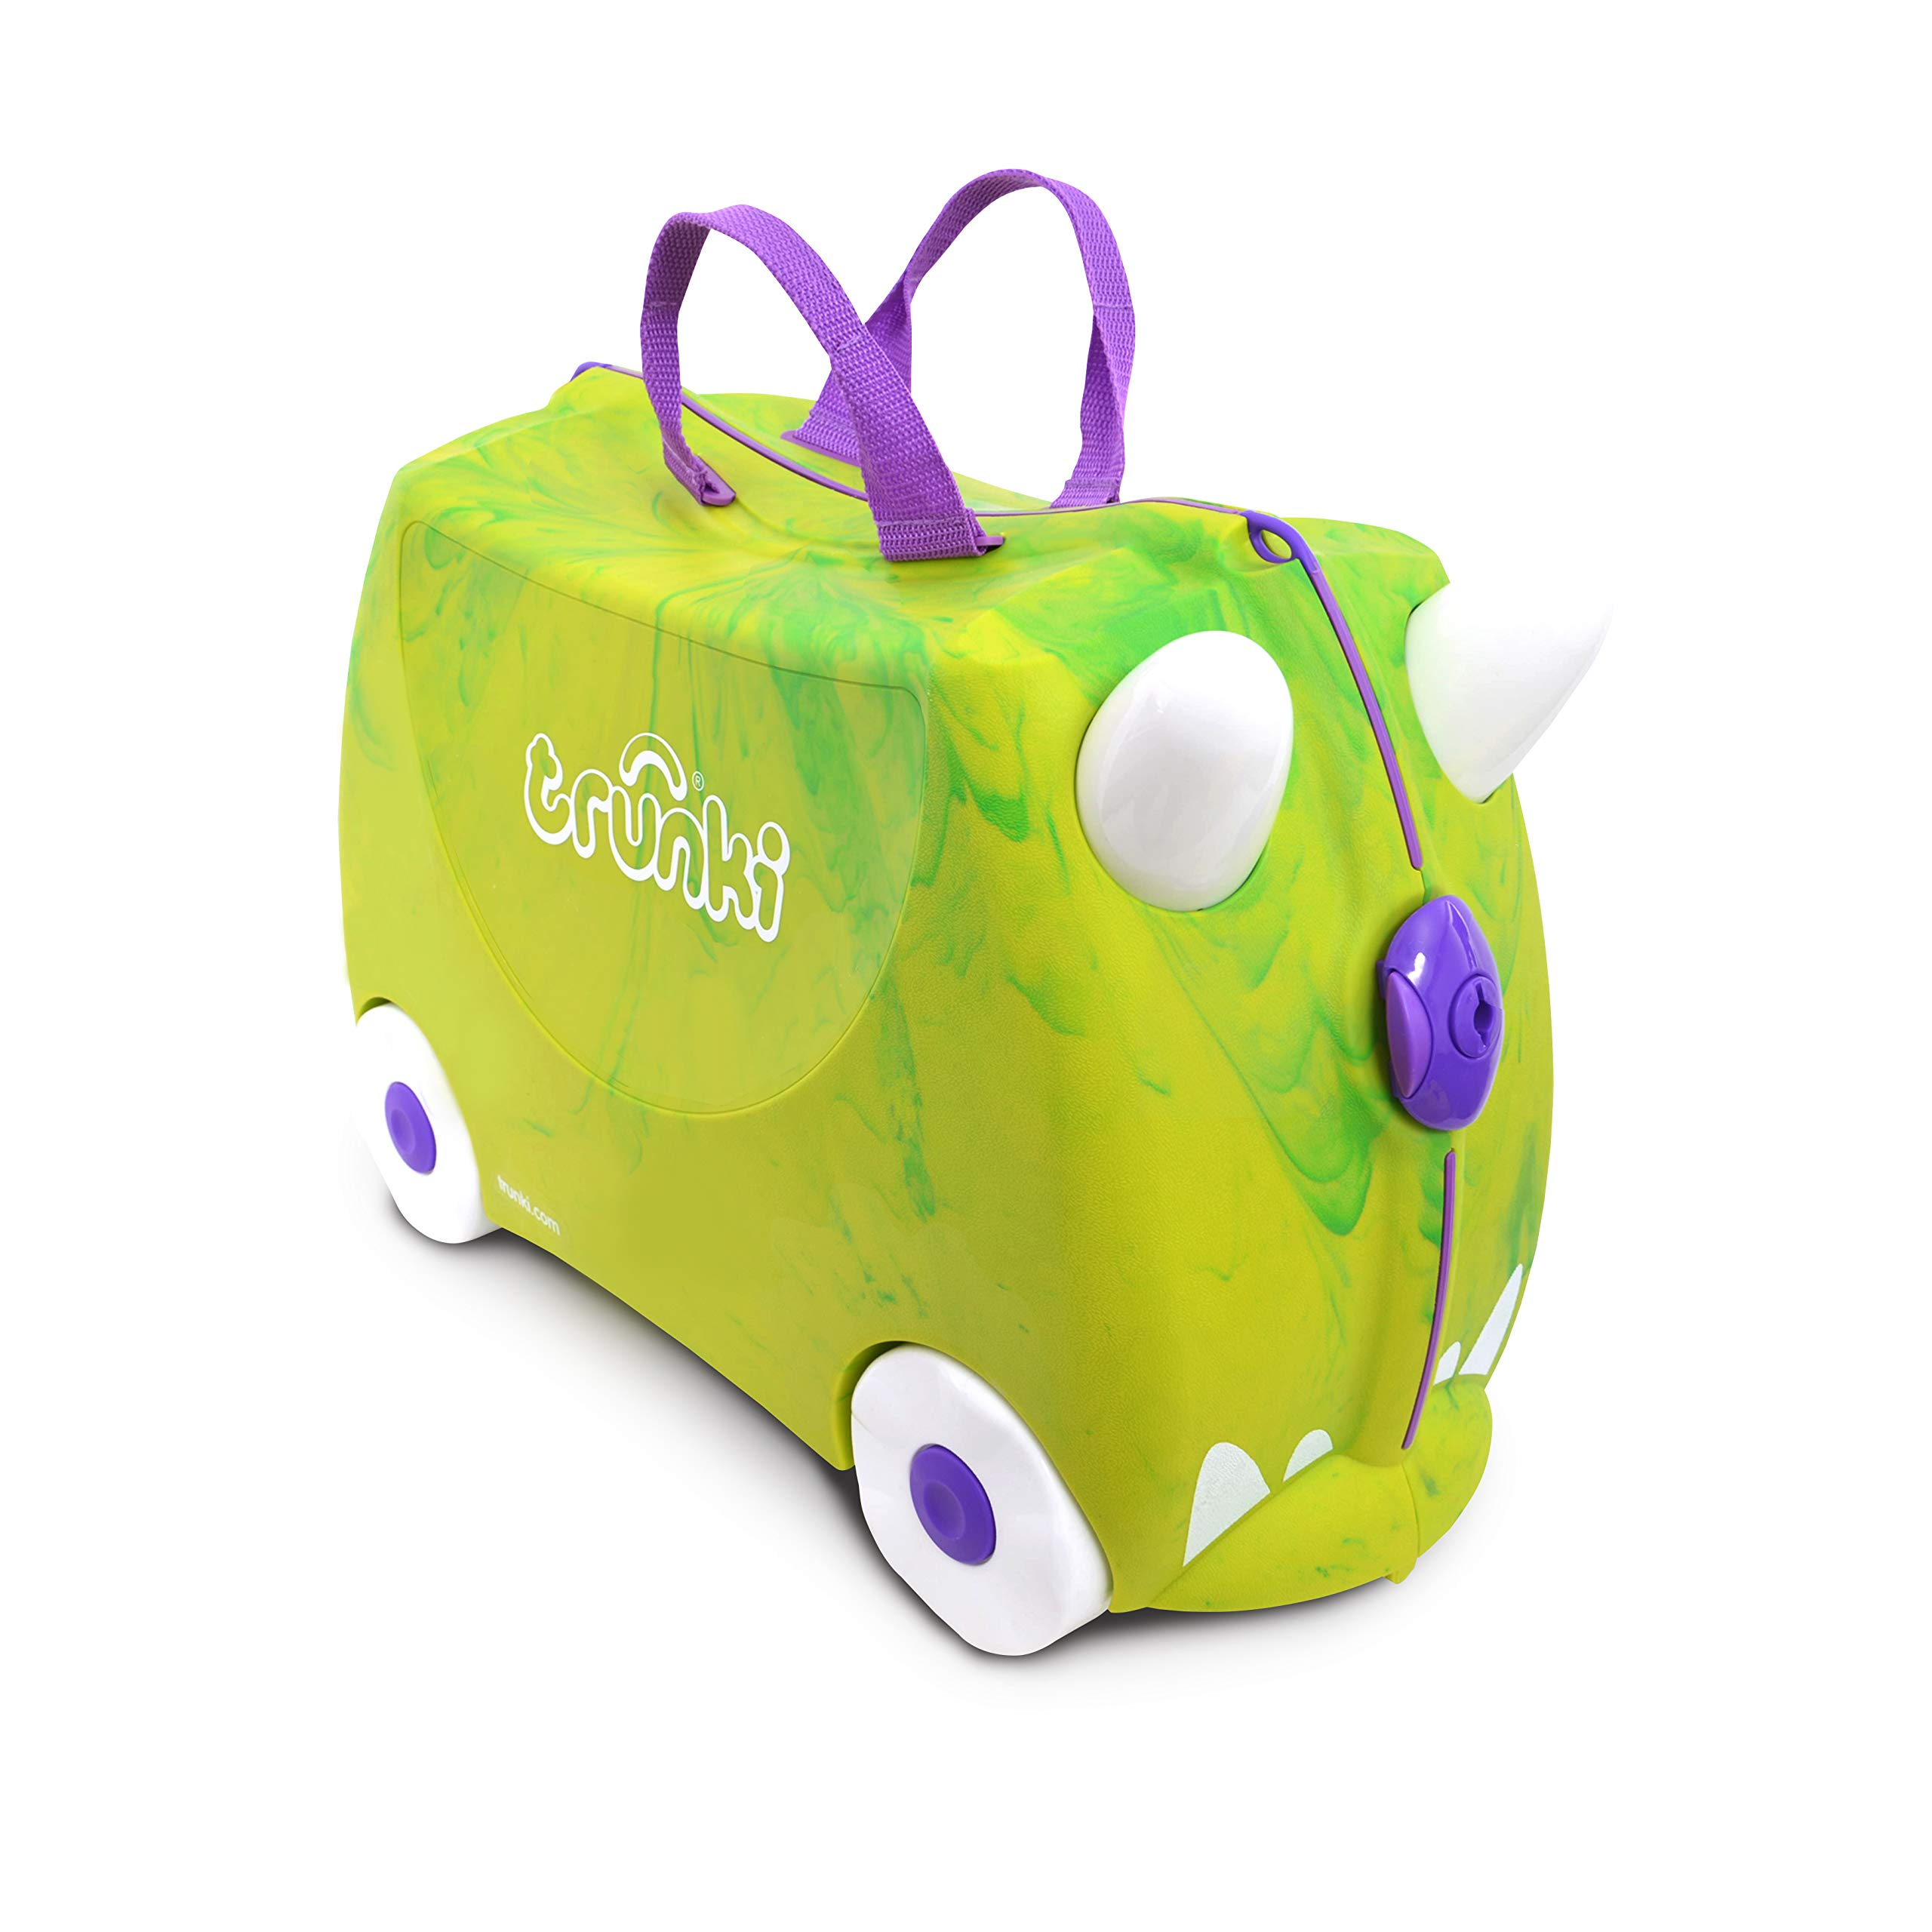 Trunki Original Kids Ride-On Suitcase and Carry-On Luggage - Trunkisauras Rex (Green) by Trunki (Image #2)